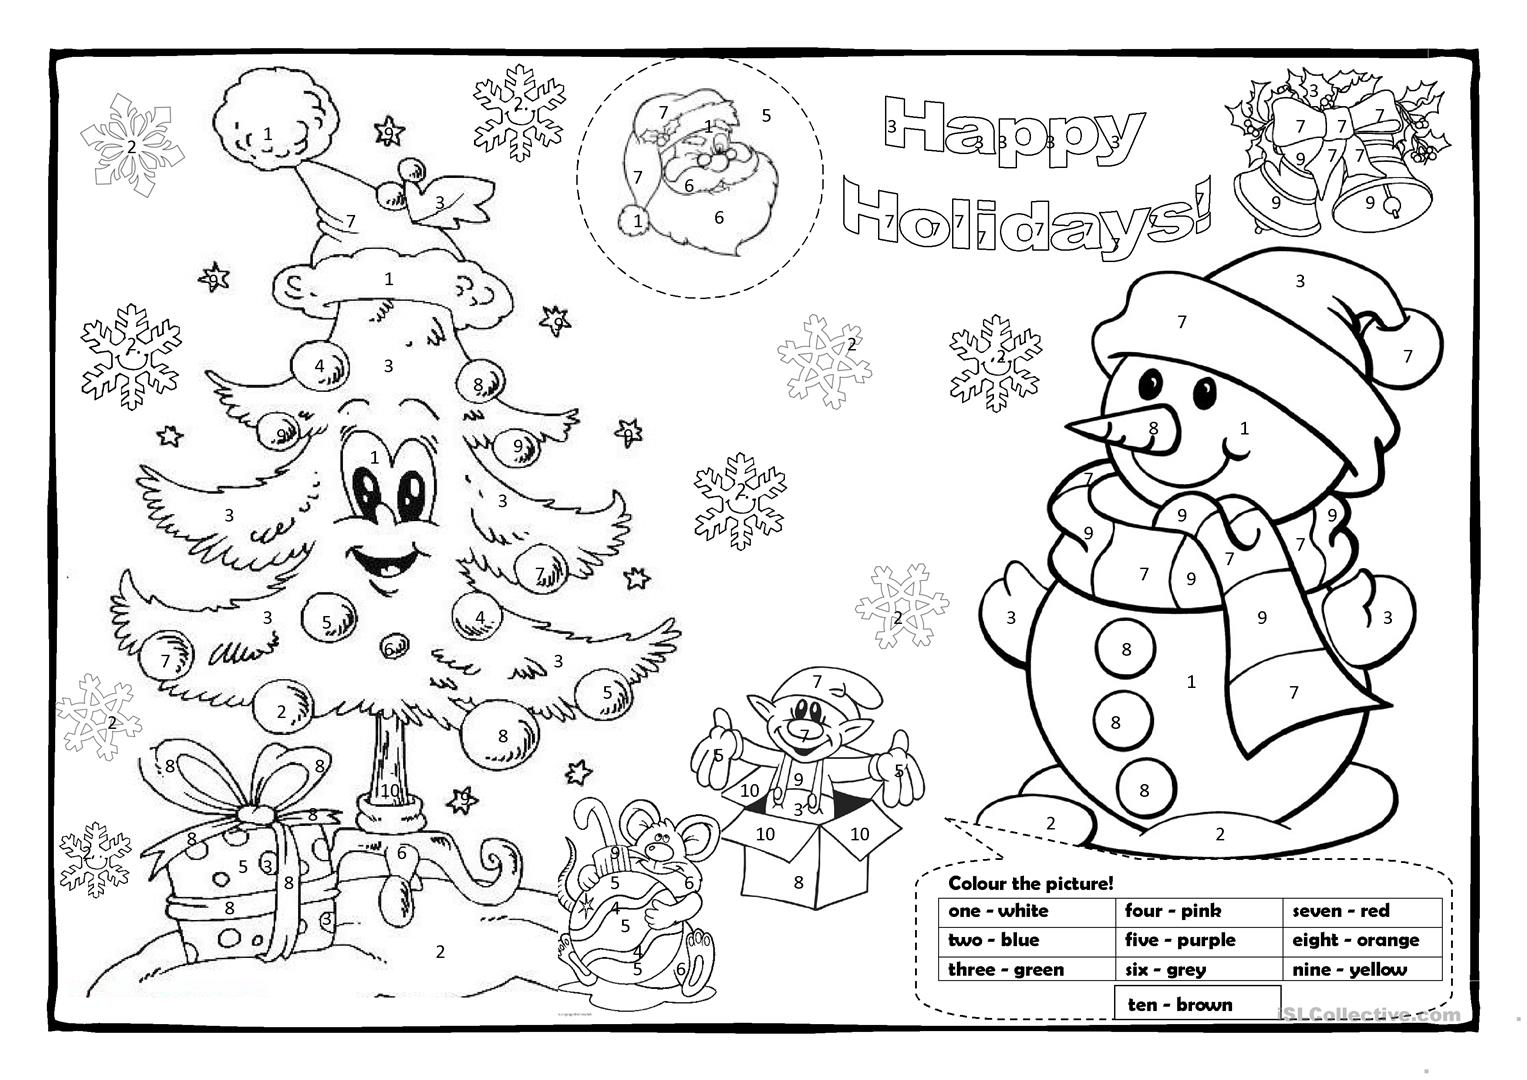 Christmas Coloring Esl With Colouring 1 Worksheet Free ESL Printable Worksheets